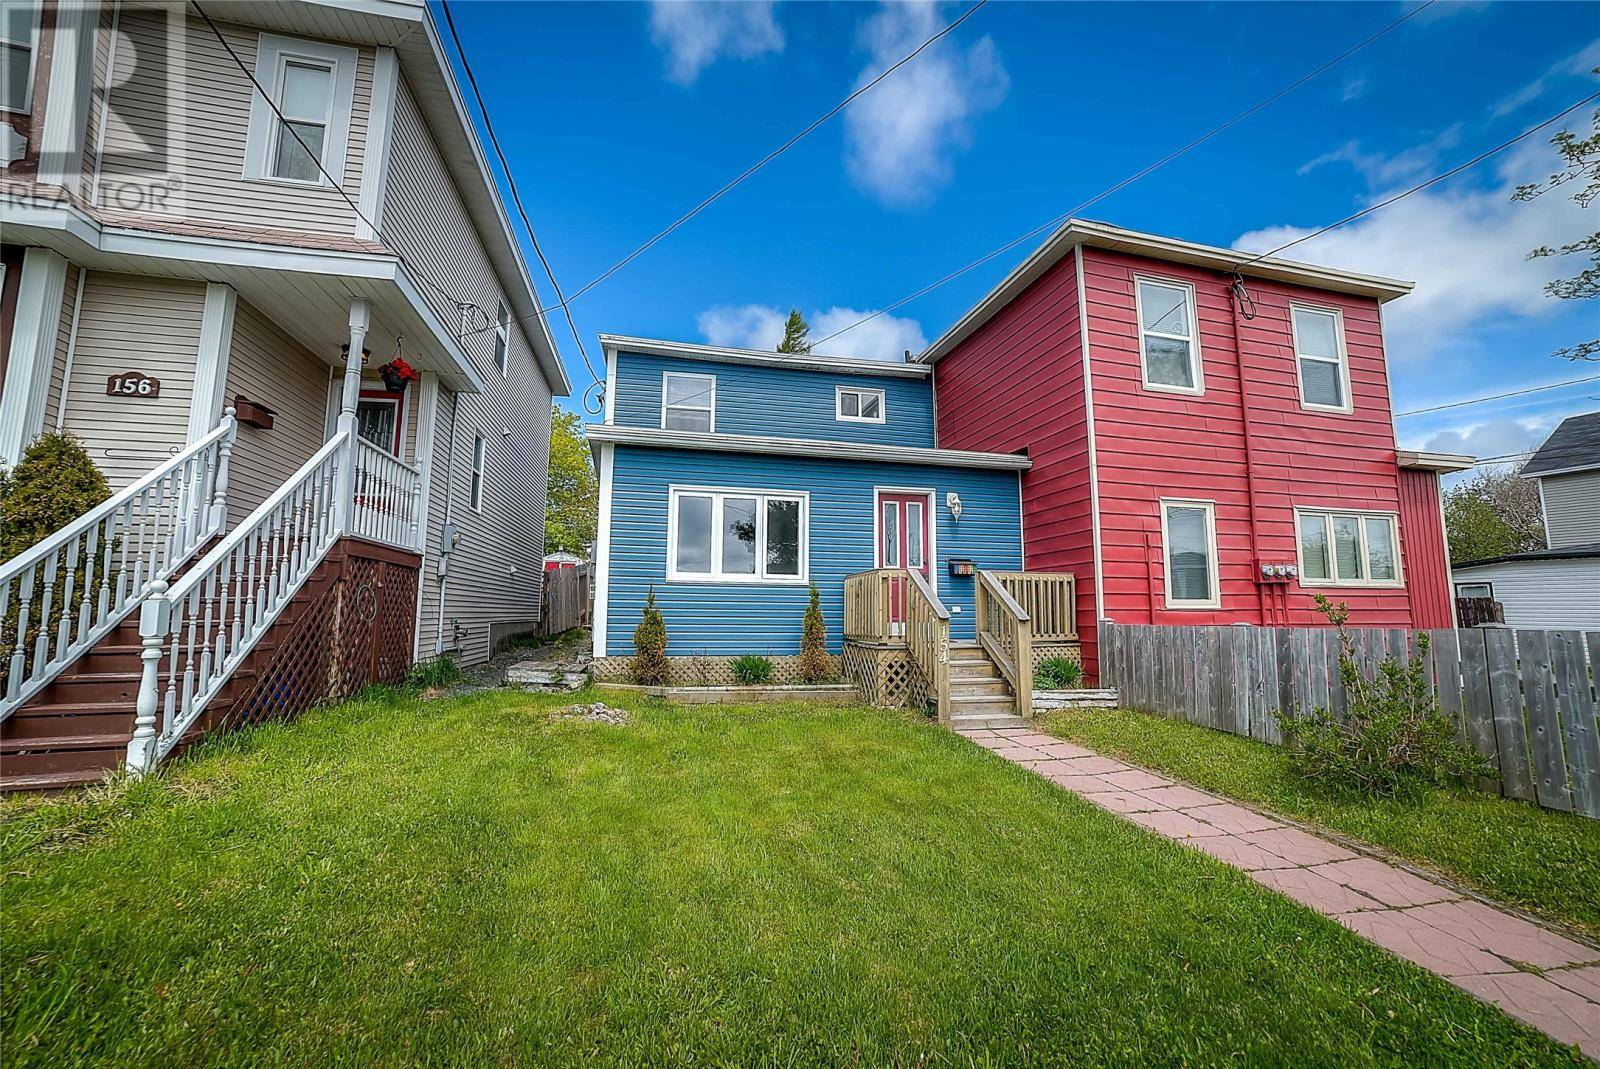 House for sale at 154 St Clare Ave St. John's Newfoundland - MLS: 1200417